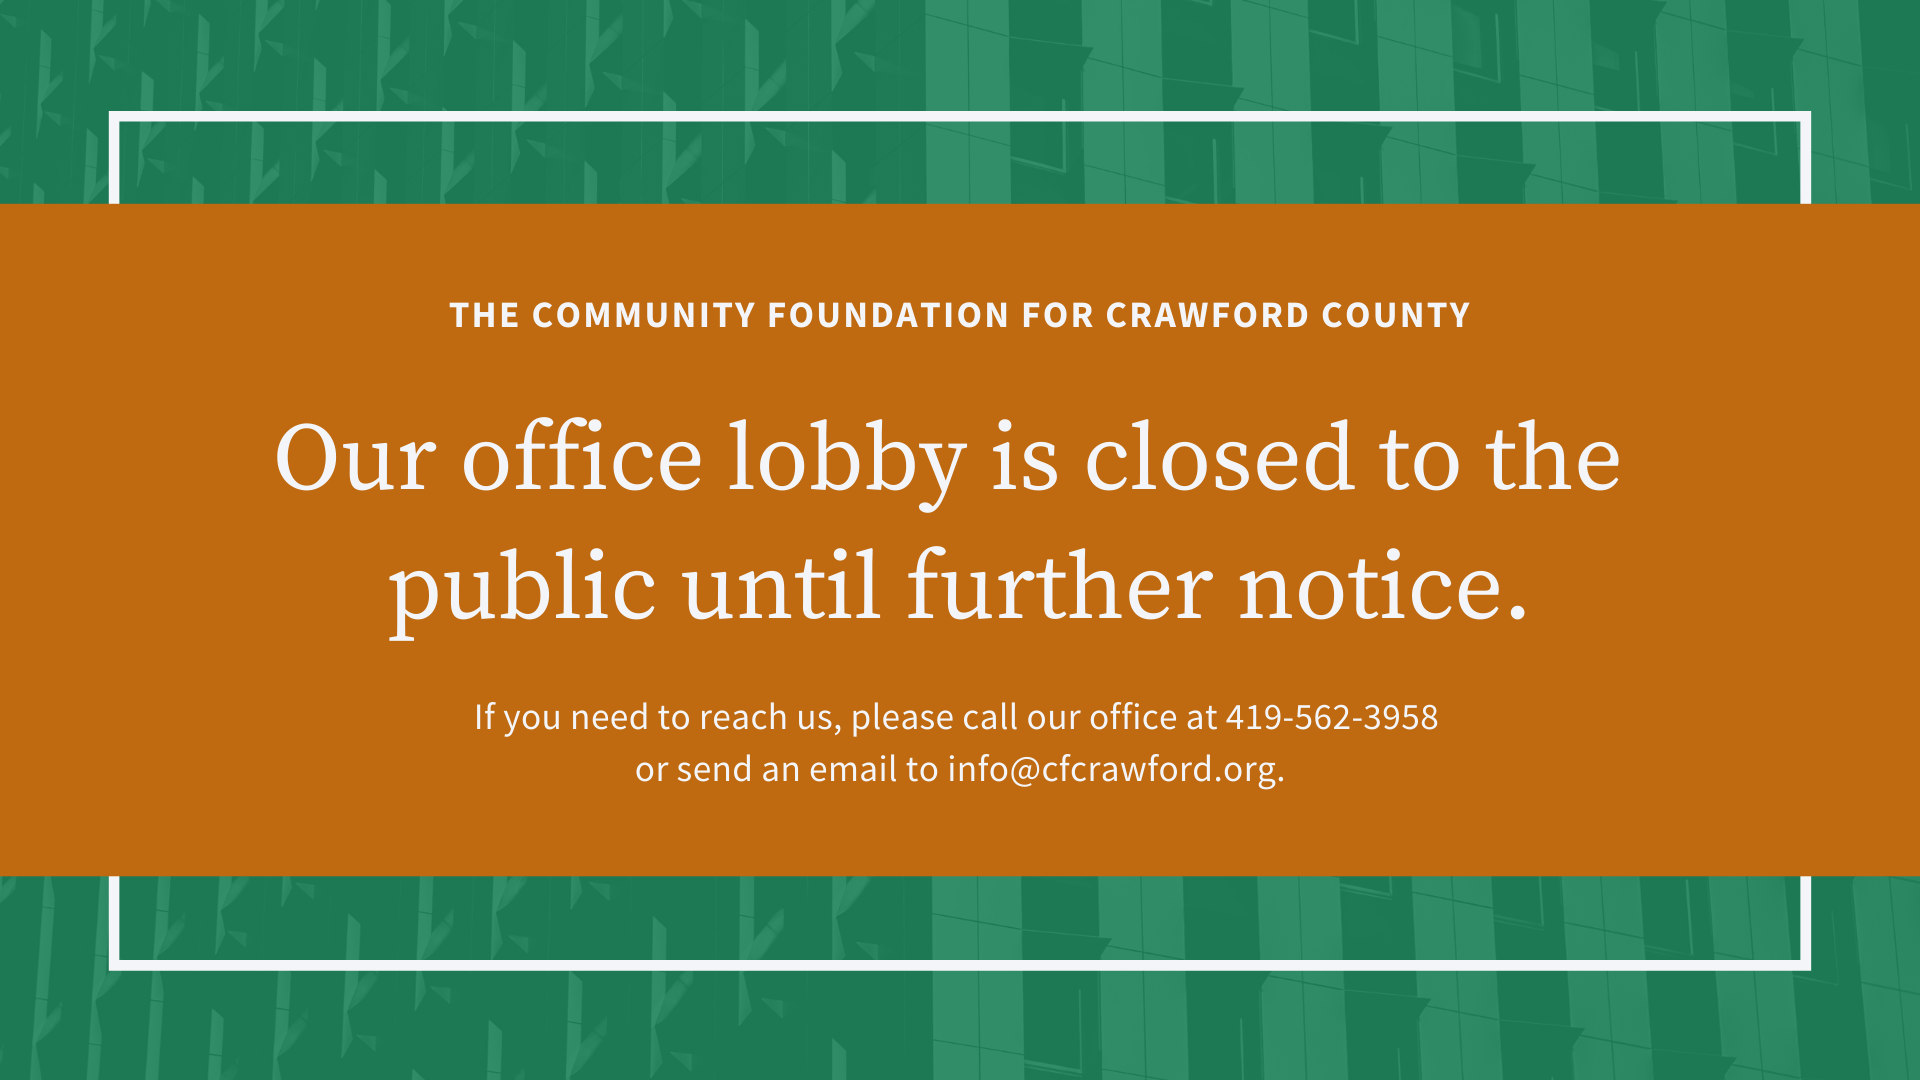 2020 Office lobby closed to the public notice